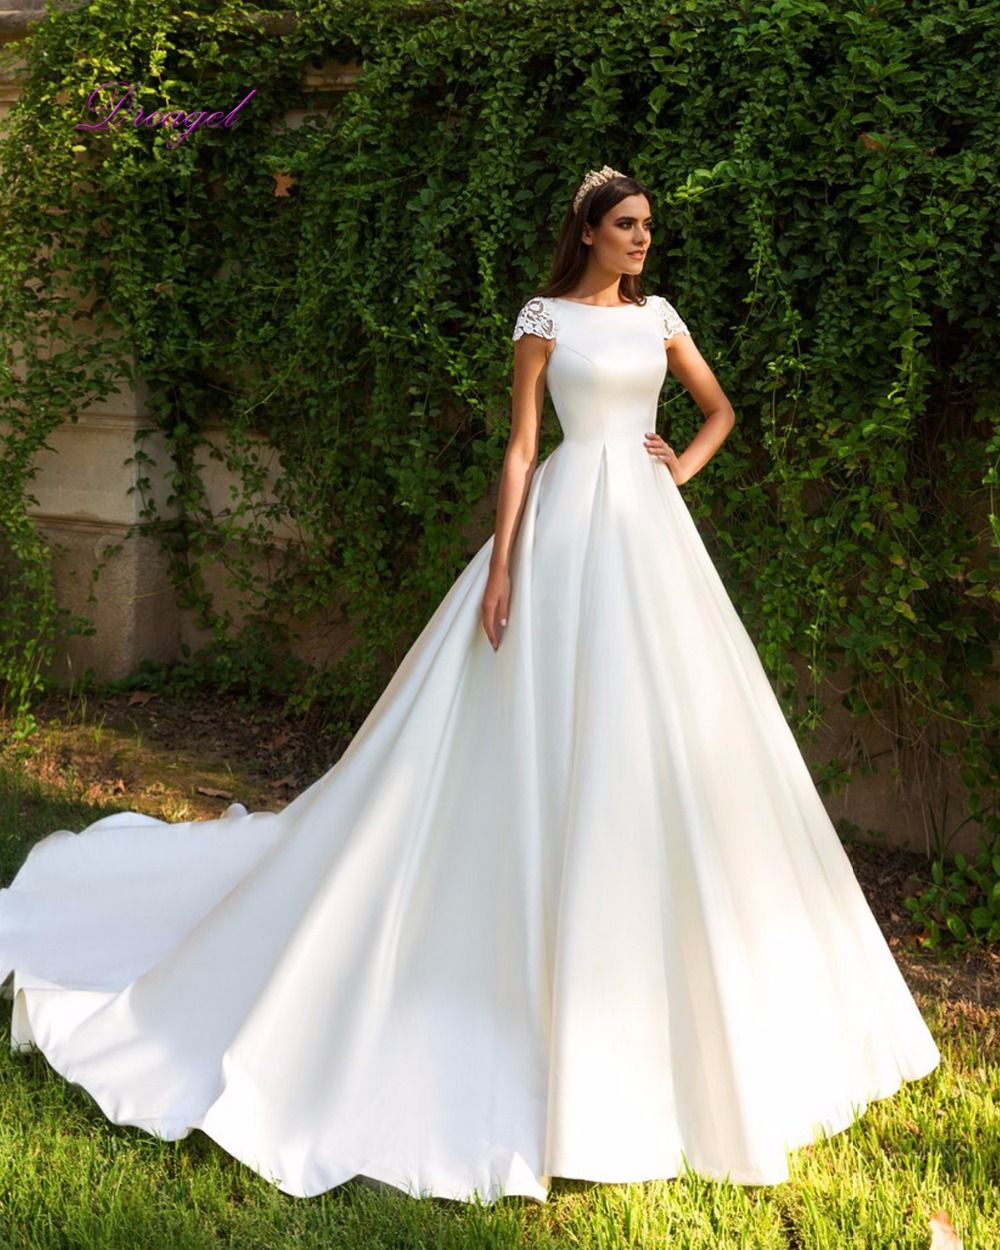 Wedding dress with lace sleeves  Dreagel Elegant Short Sleeve A Line Satin Court Train Wedding Dress